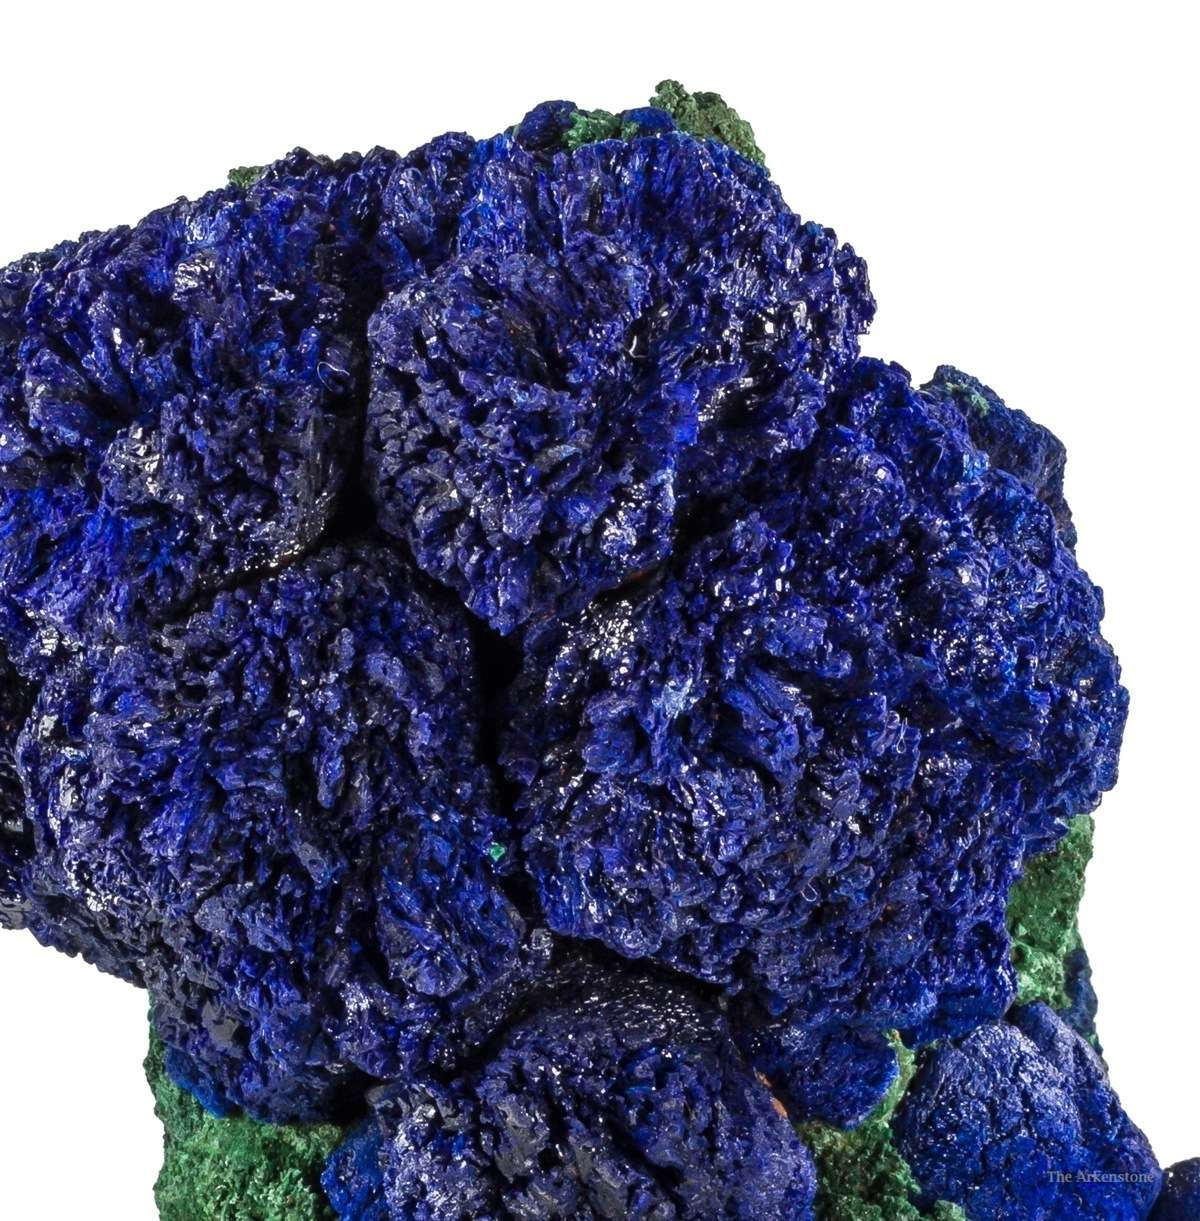 Rosettes lustrous rich blue azurite clusters 3 5 cm aesthetically